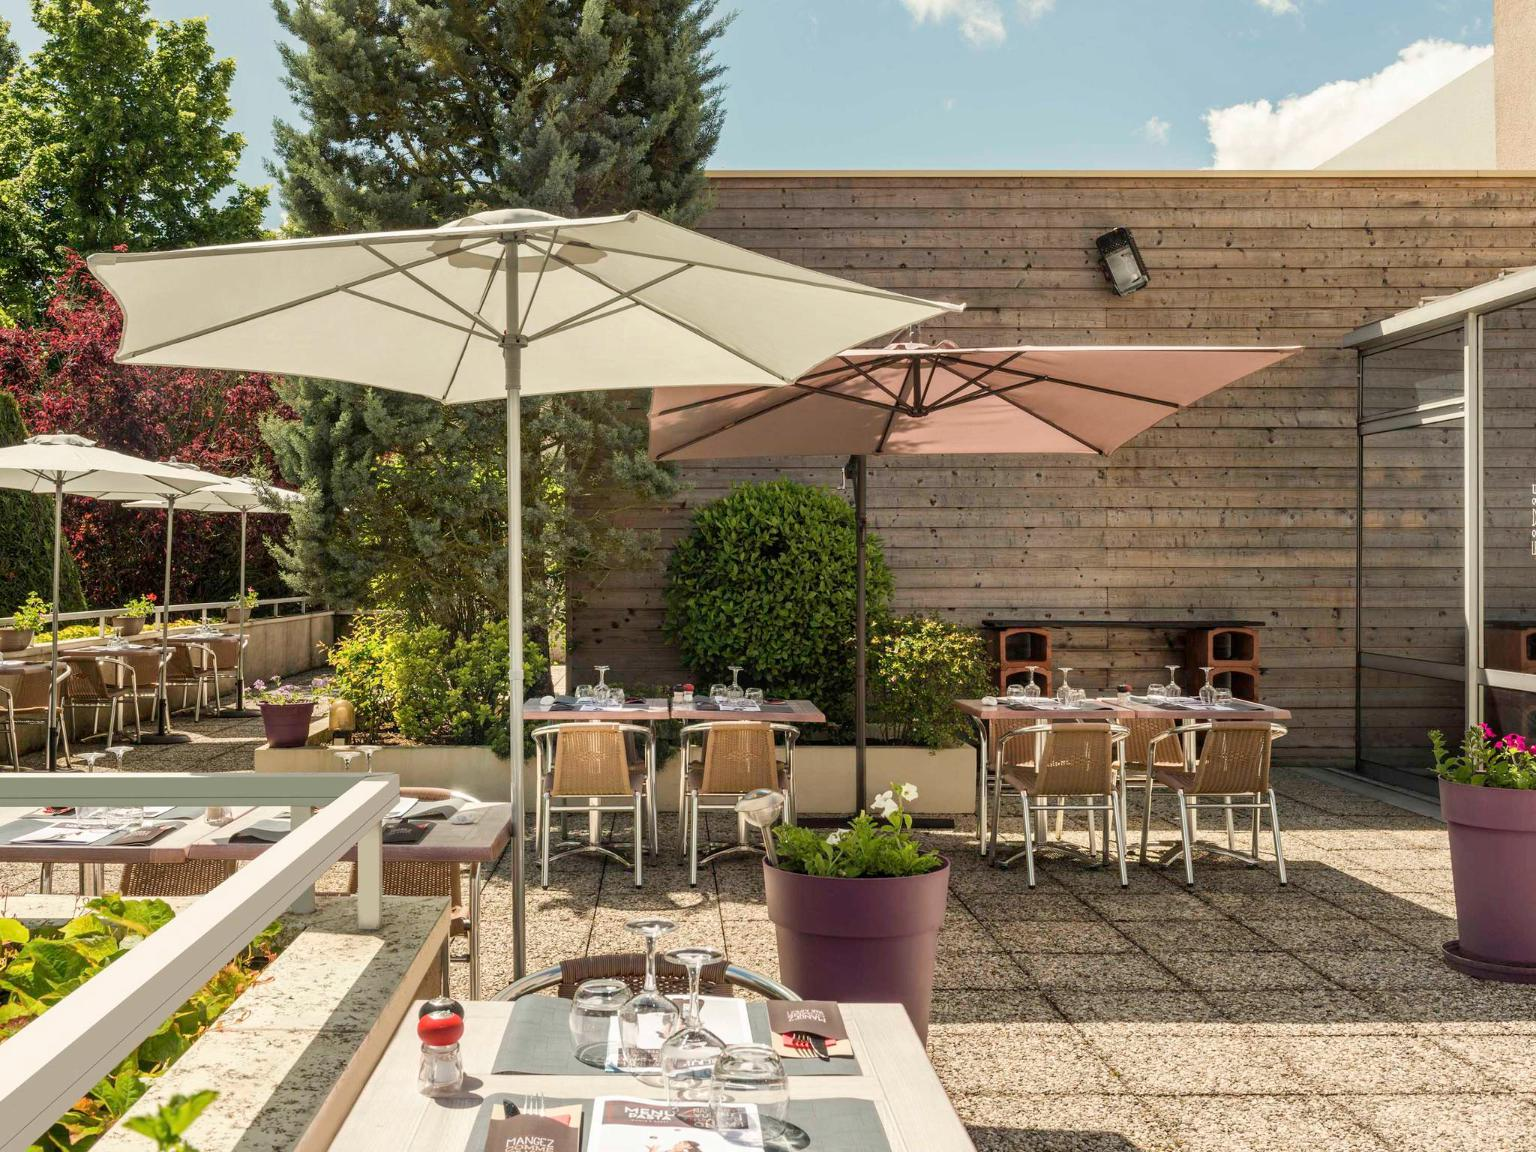 Ibis chartres centre cath drale h tel 14 place - Horaires piscine chartres ...